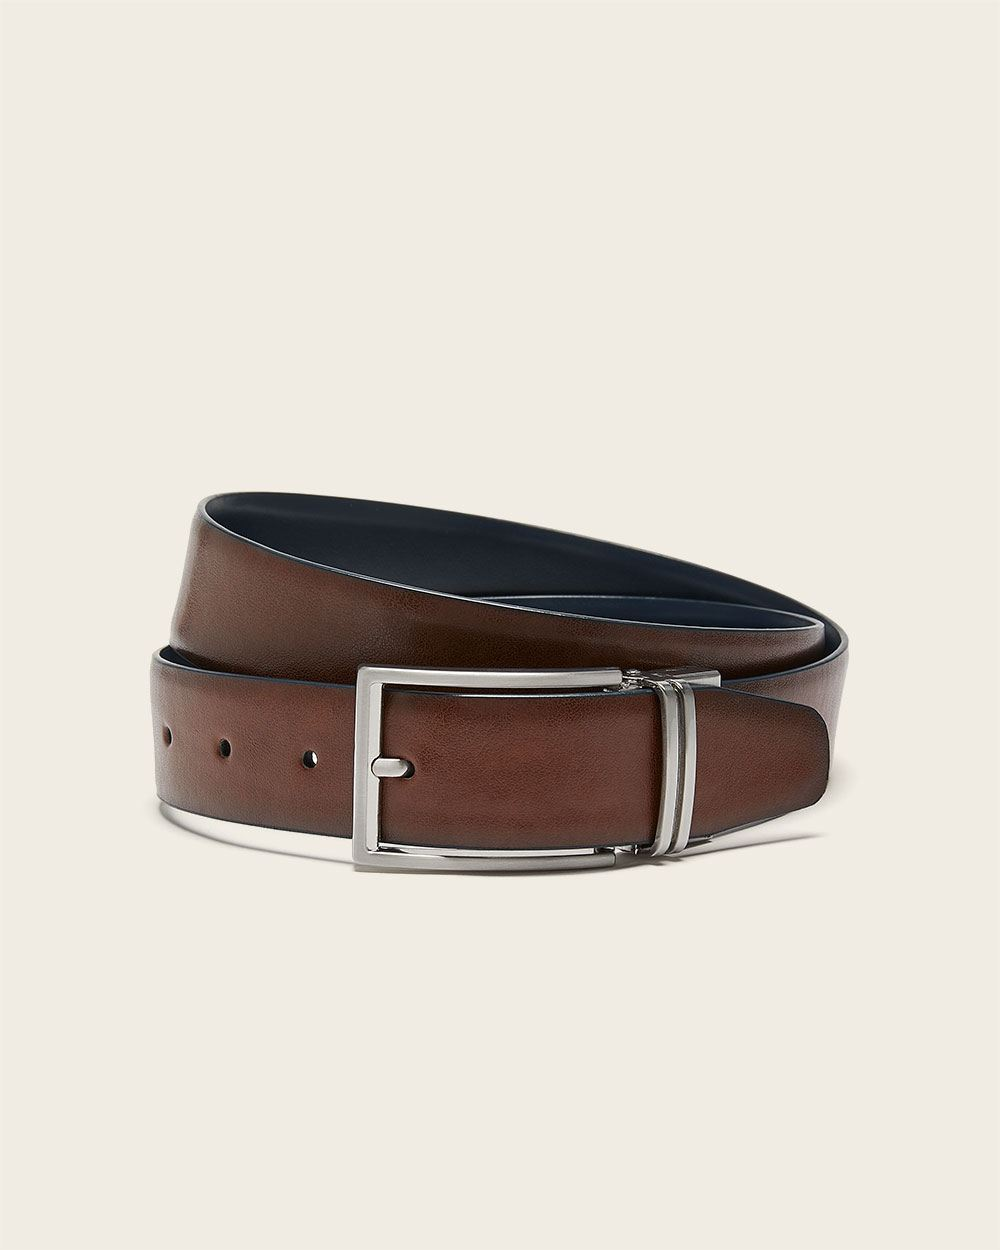 Reversible brown and navy leather belt